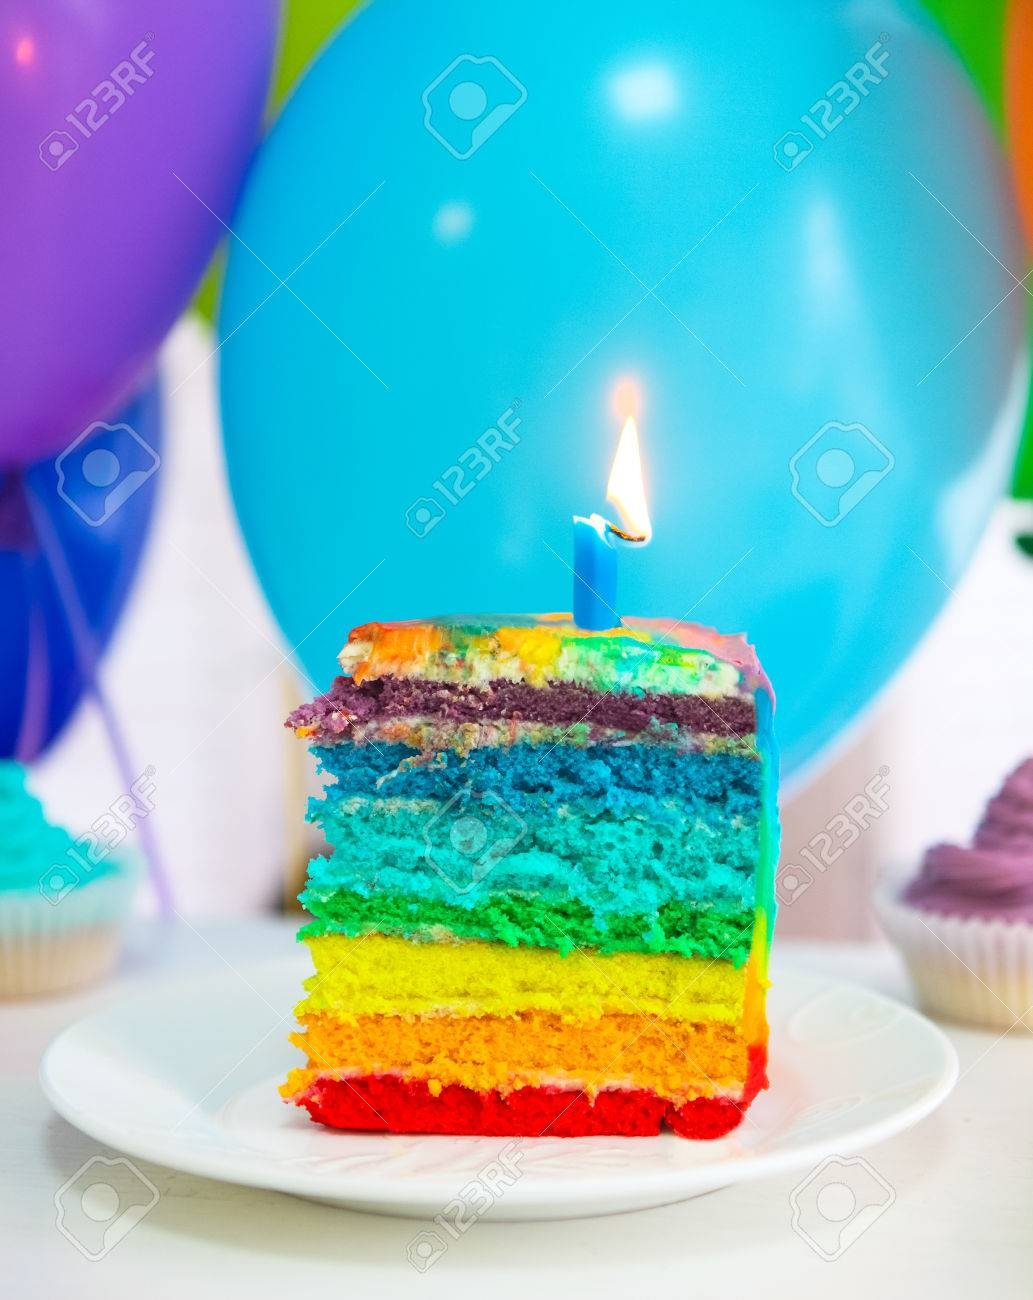 Rainbow Cake Decorated With Birthday Candle Balloons On The Background Stock Photo